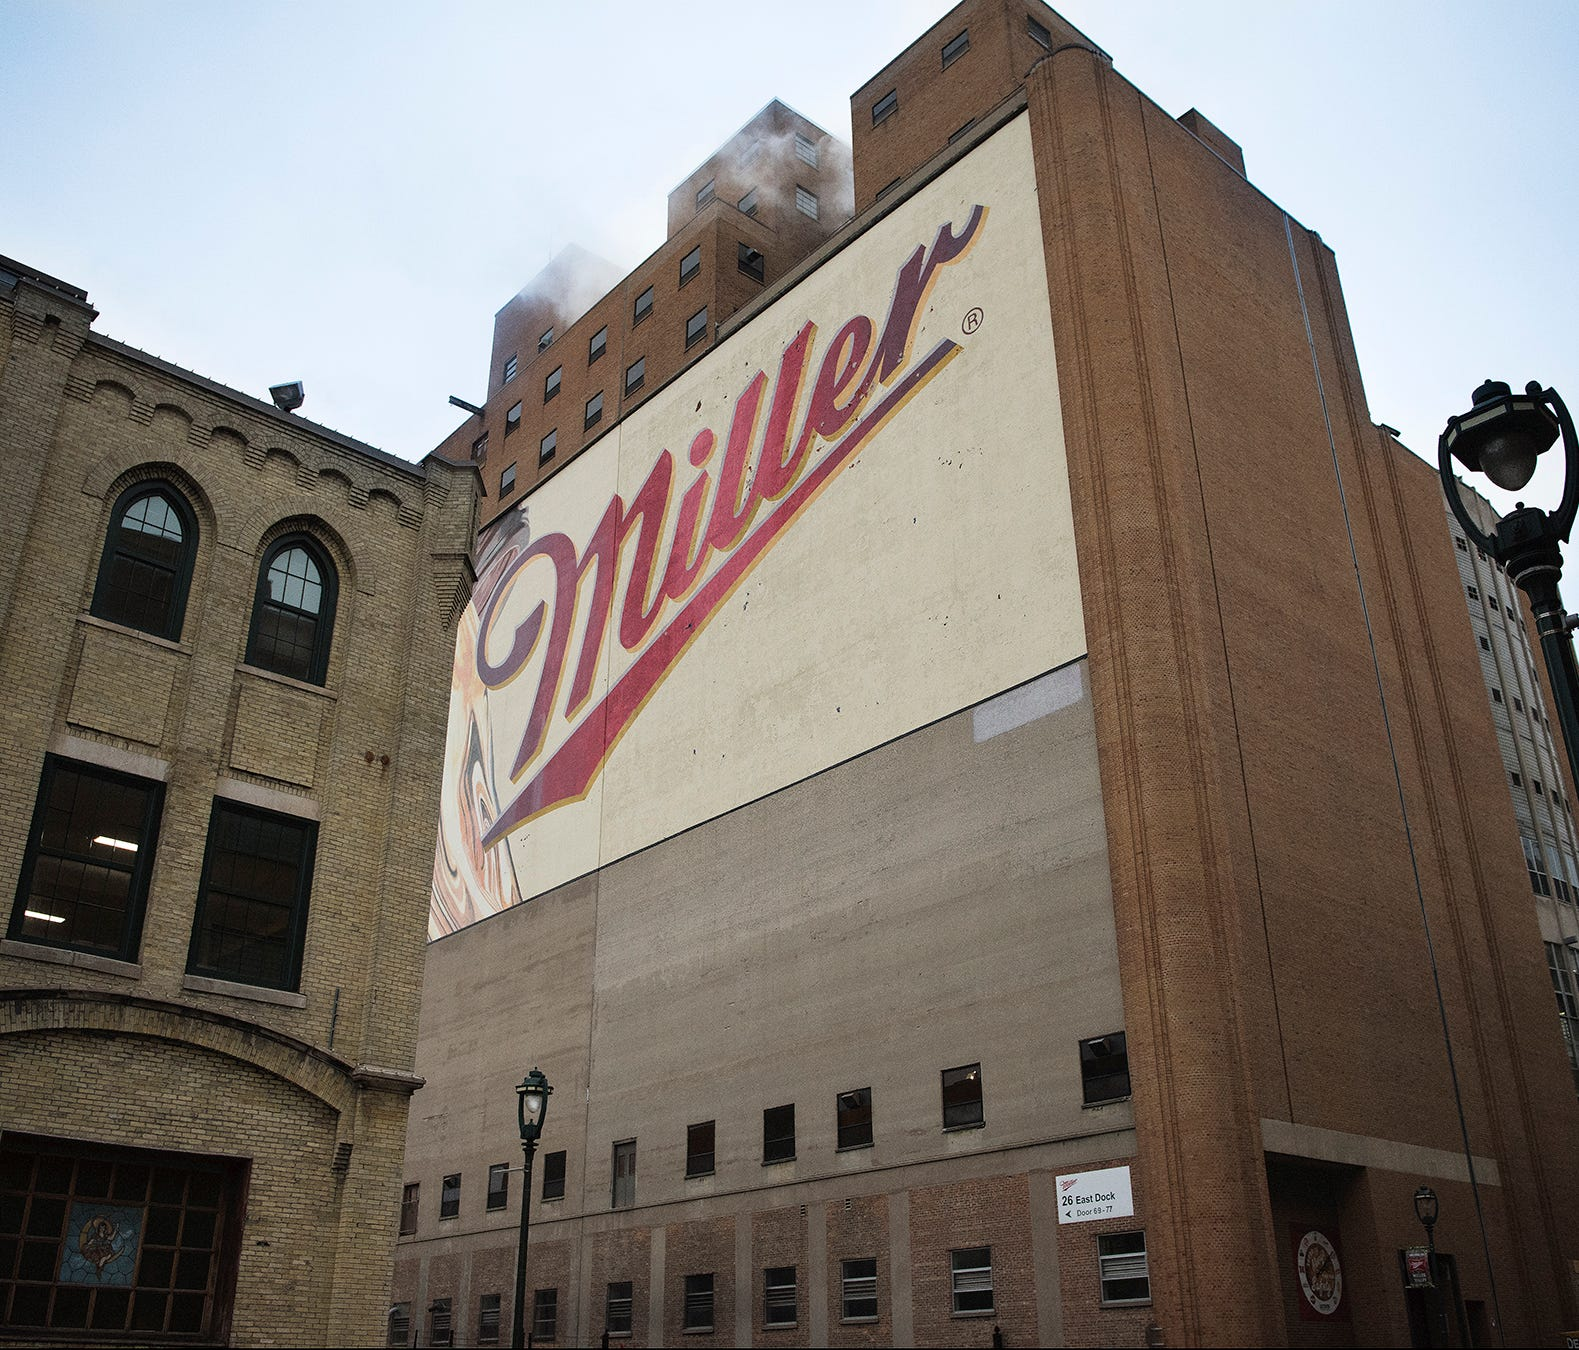 No brewery is bigger these days in Milwaukee than the Miller Brewing Co., now owned by MillerCoors. The Milwaukee location annually churns out up to 10 million barrels of beer, including such well-known brands as Miller Lite, Miller High Life, Miller